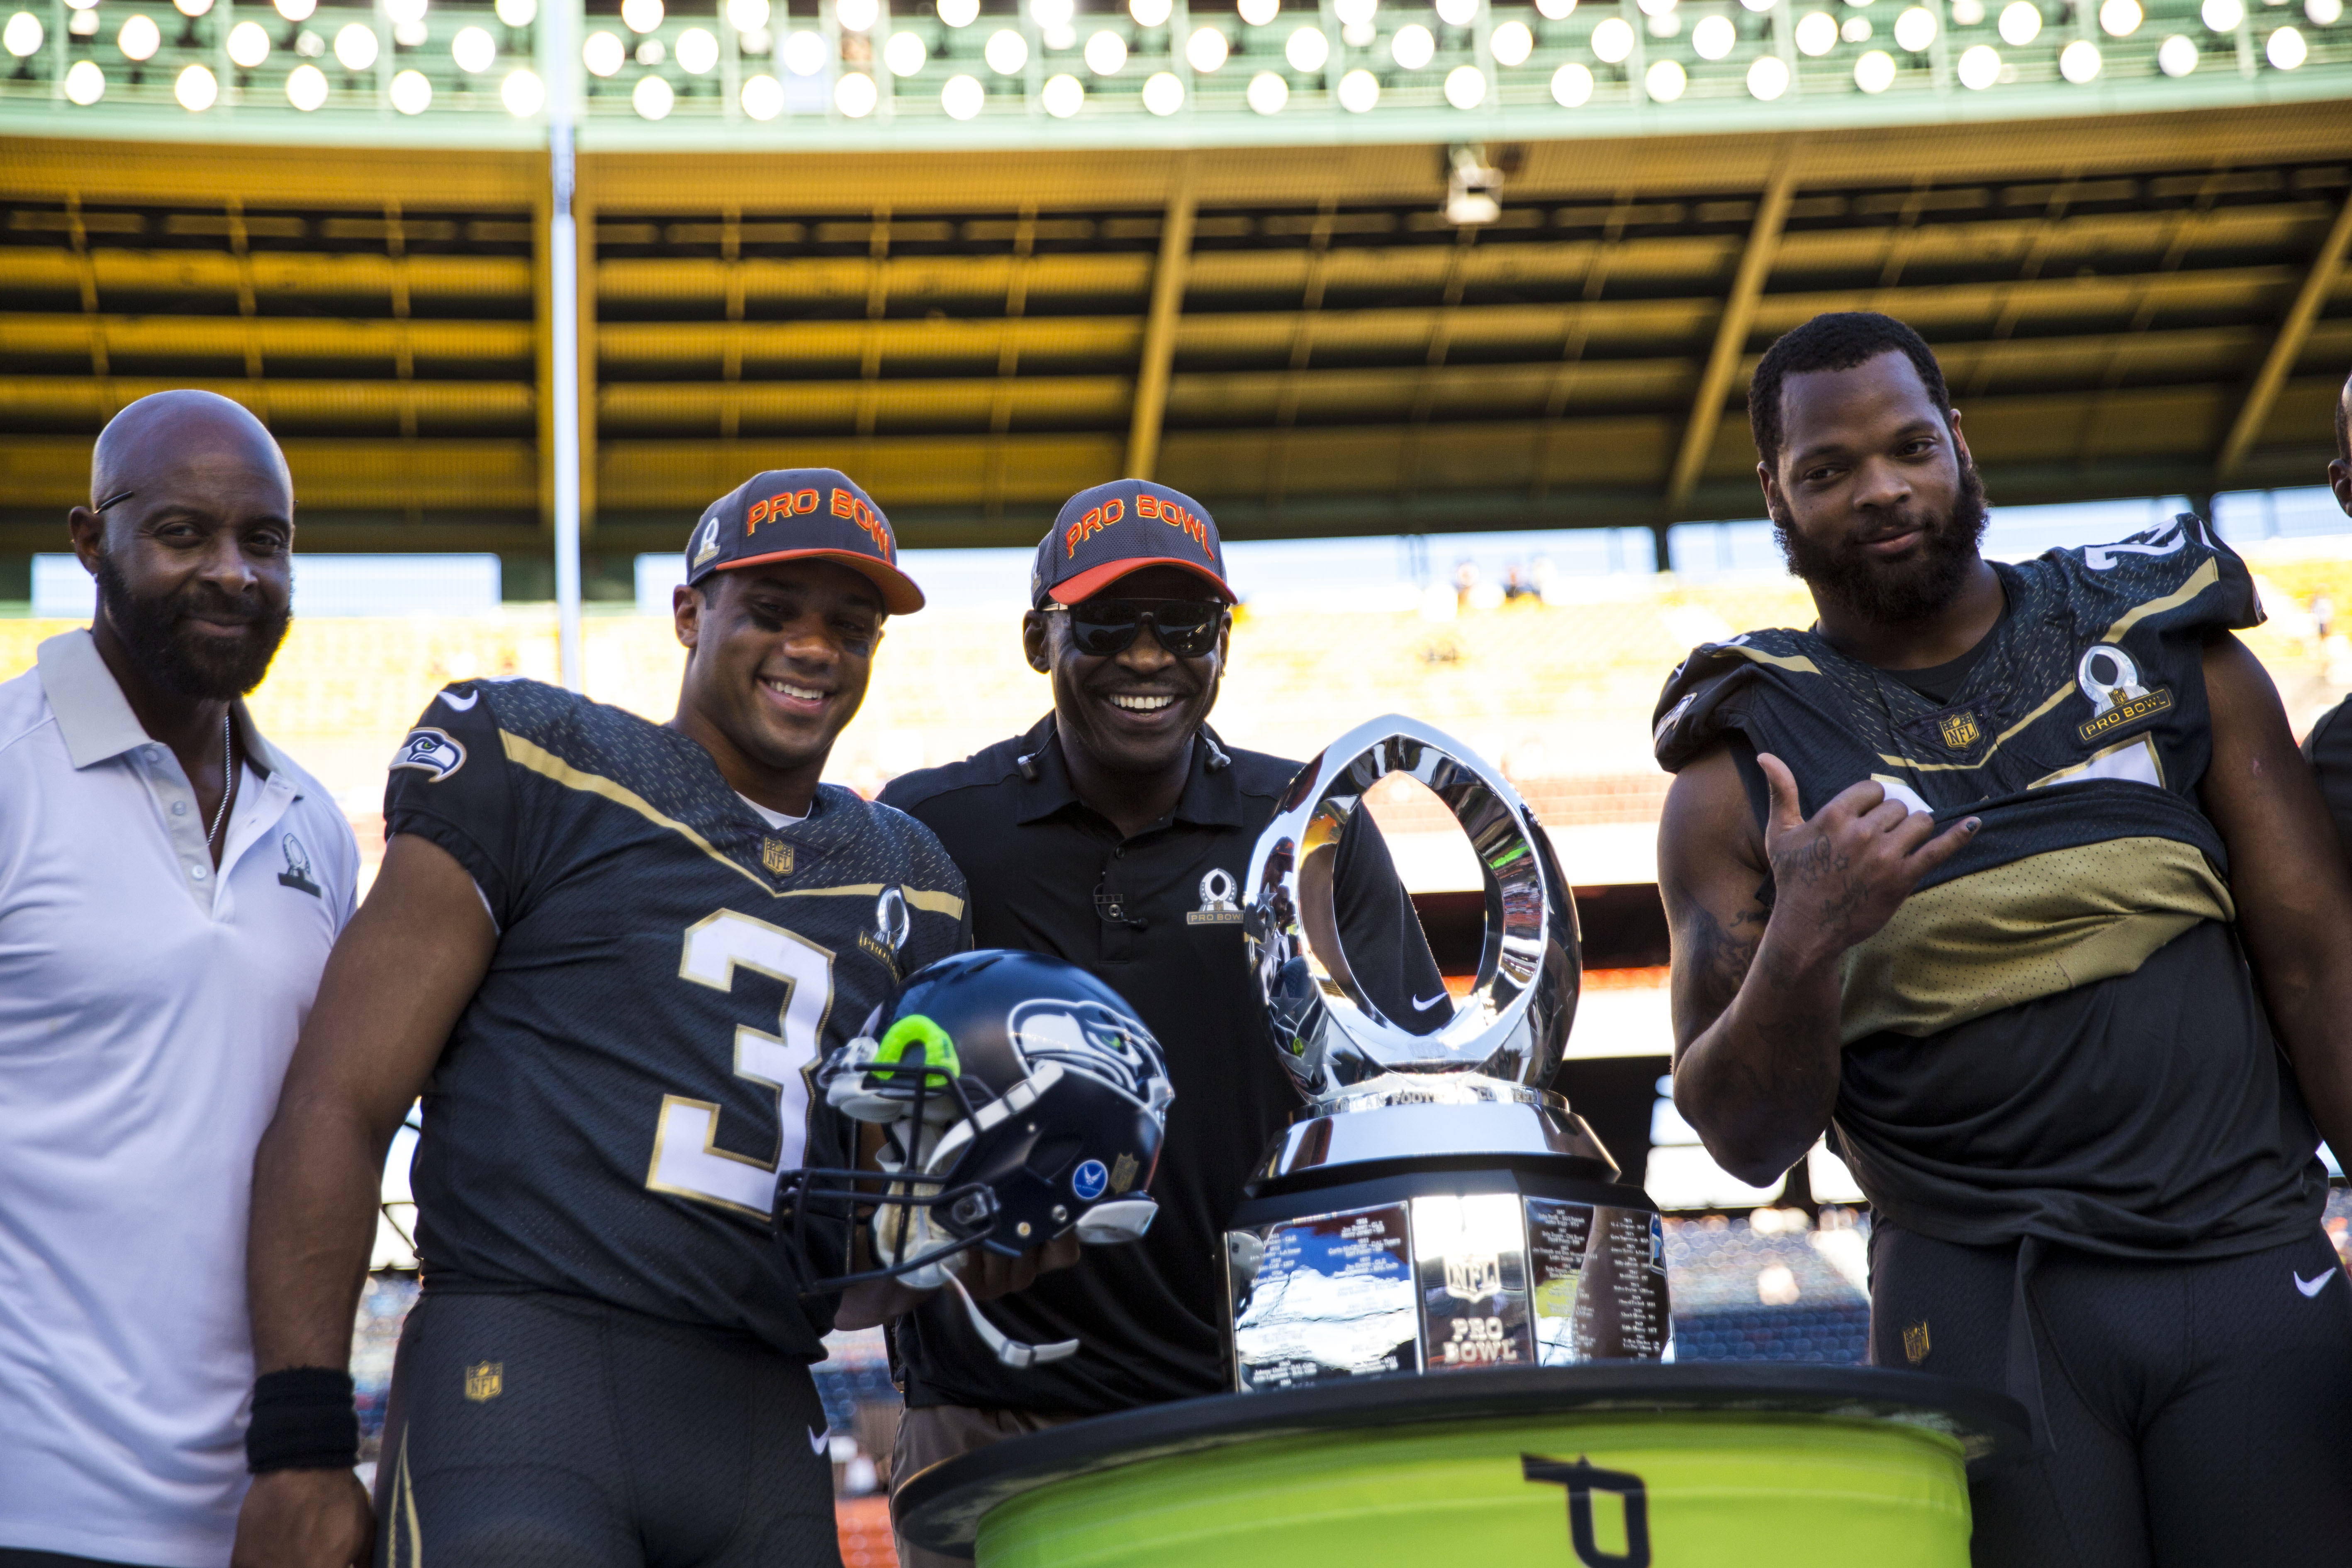 Russell Wilson Throws 3 TDs In 49-27 Pro Bowl Victory – CBS Detroit